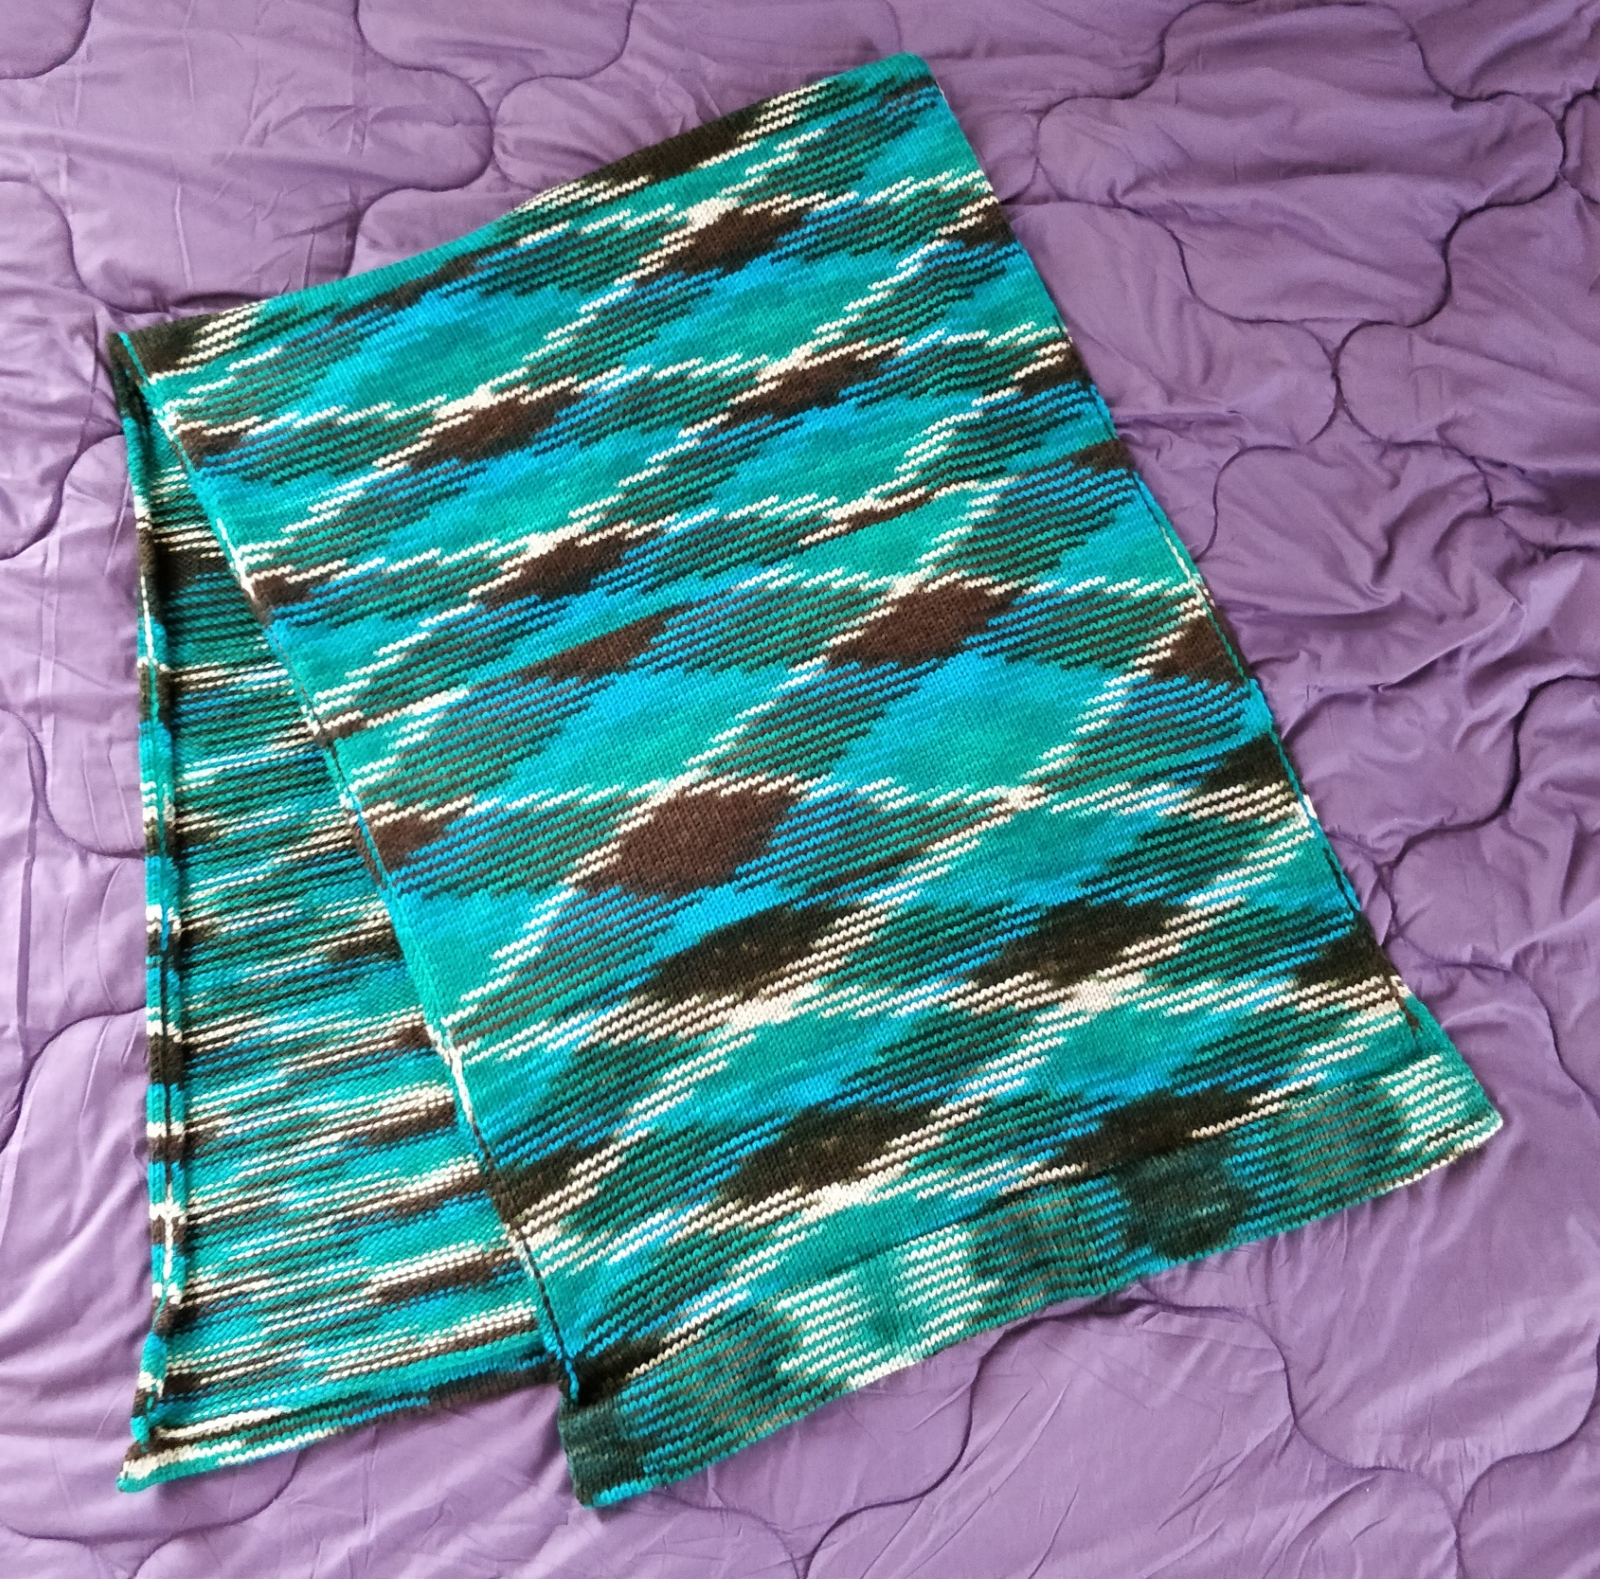 A teal and brown knit wrap displayed on a purple bedspread.